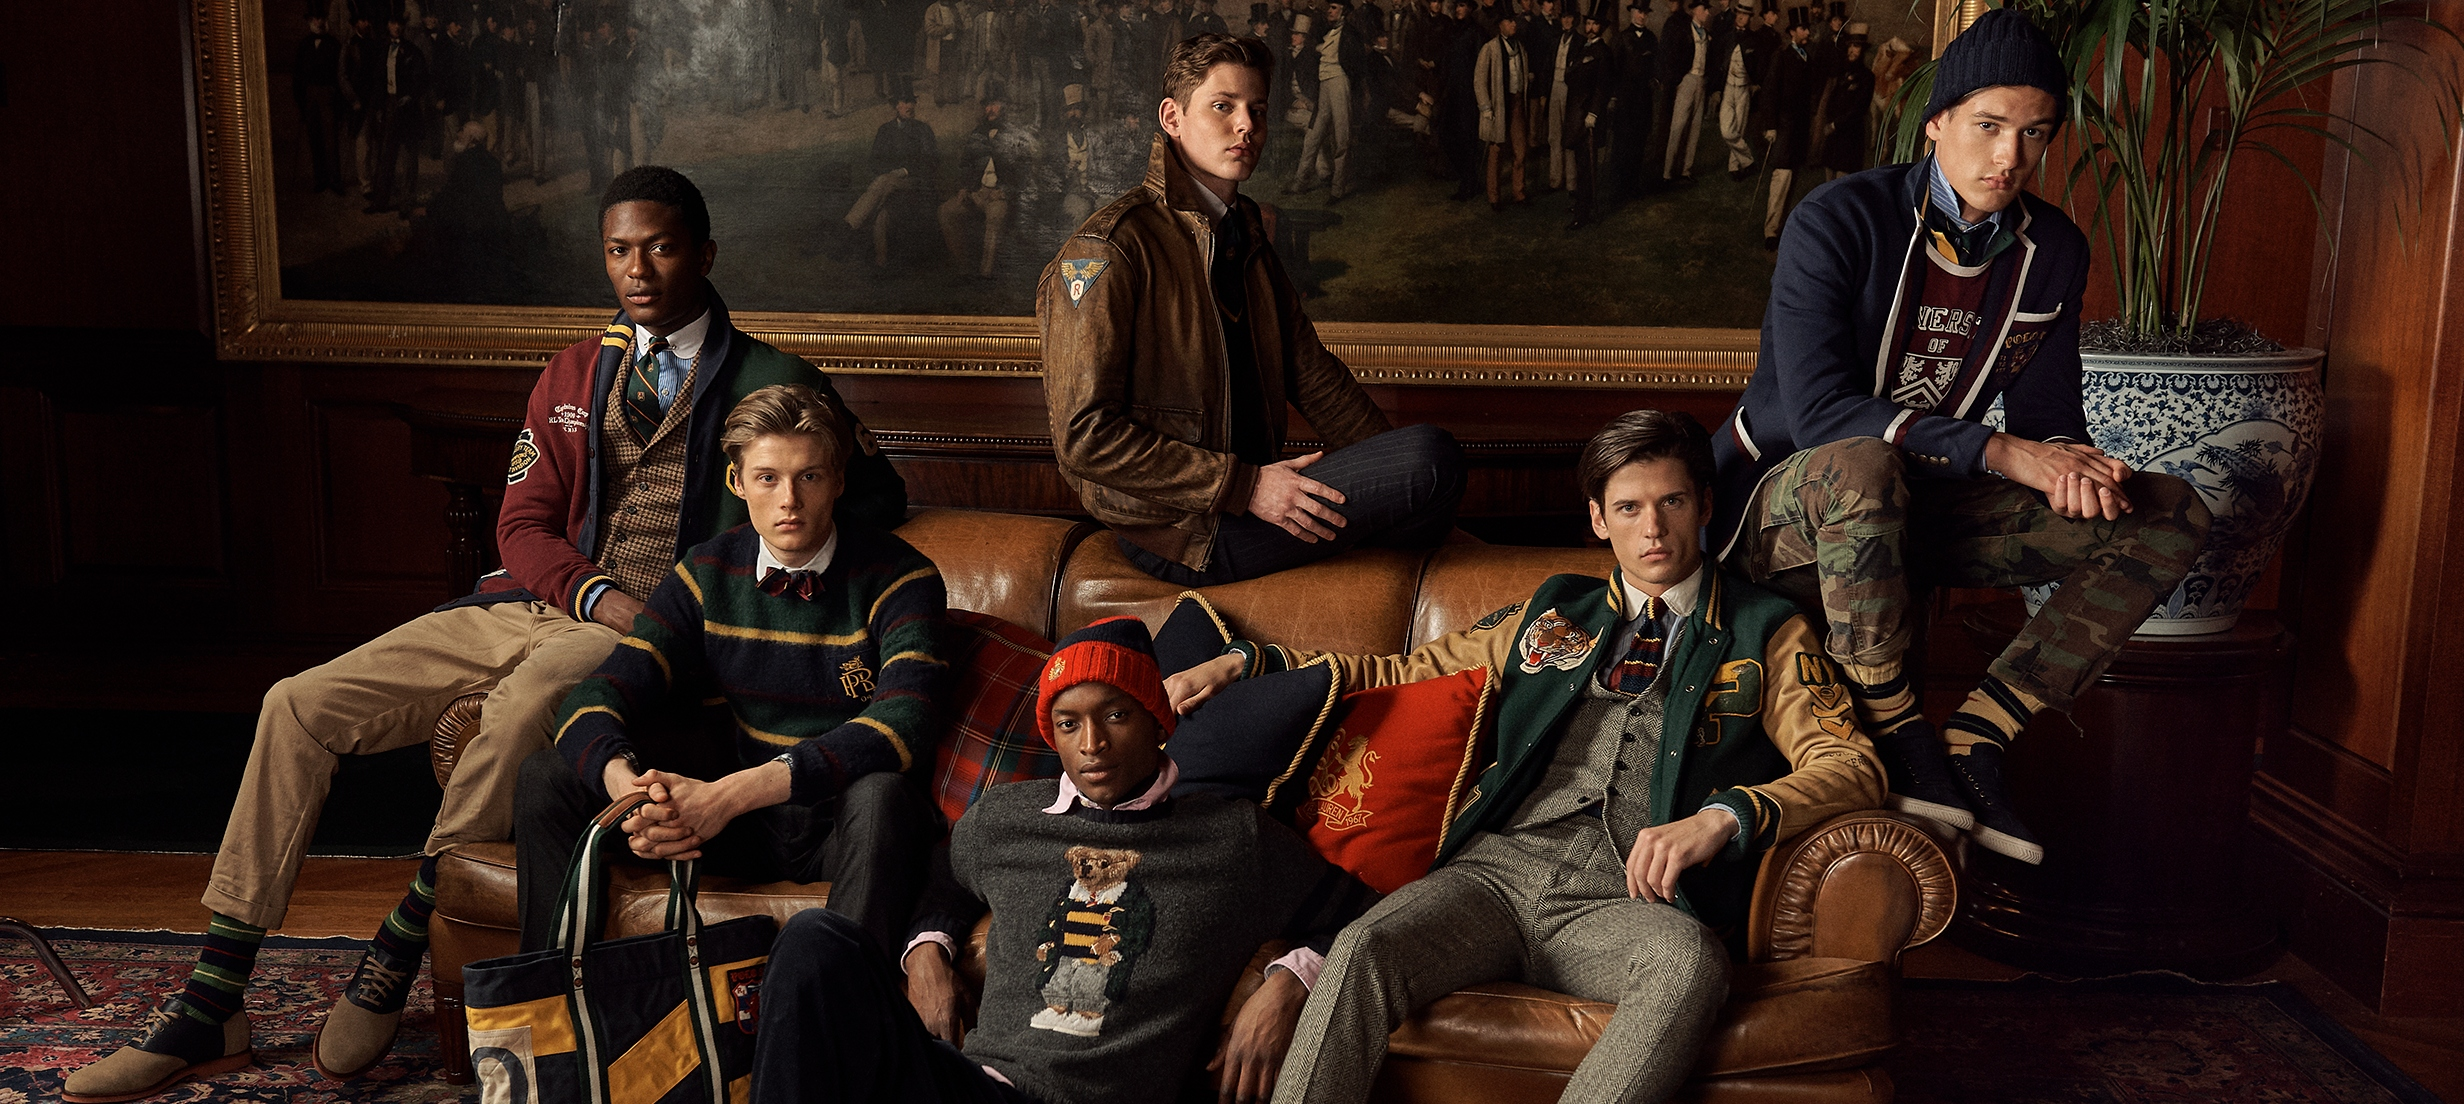 Never out of style – 50 Jahre Ralph Lauren